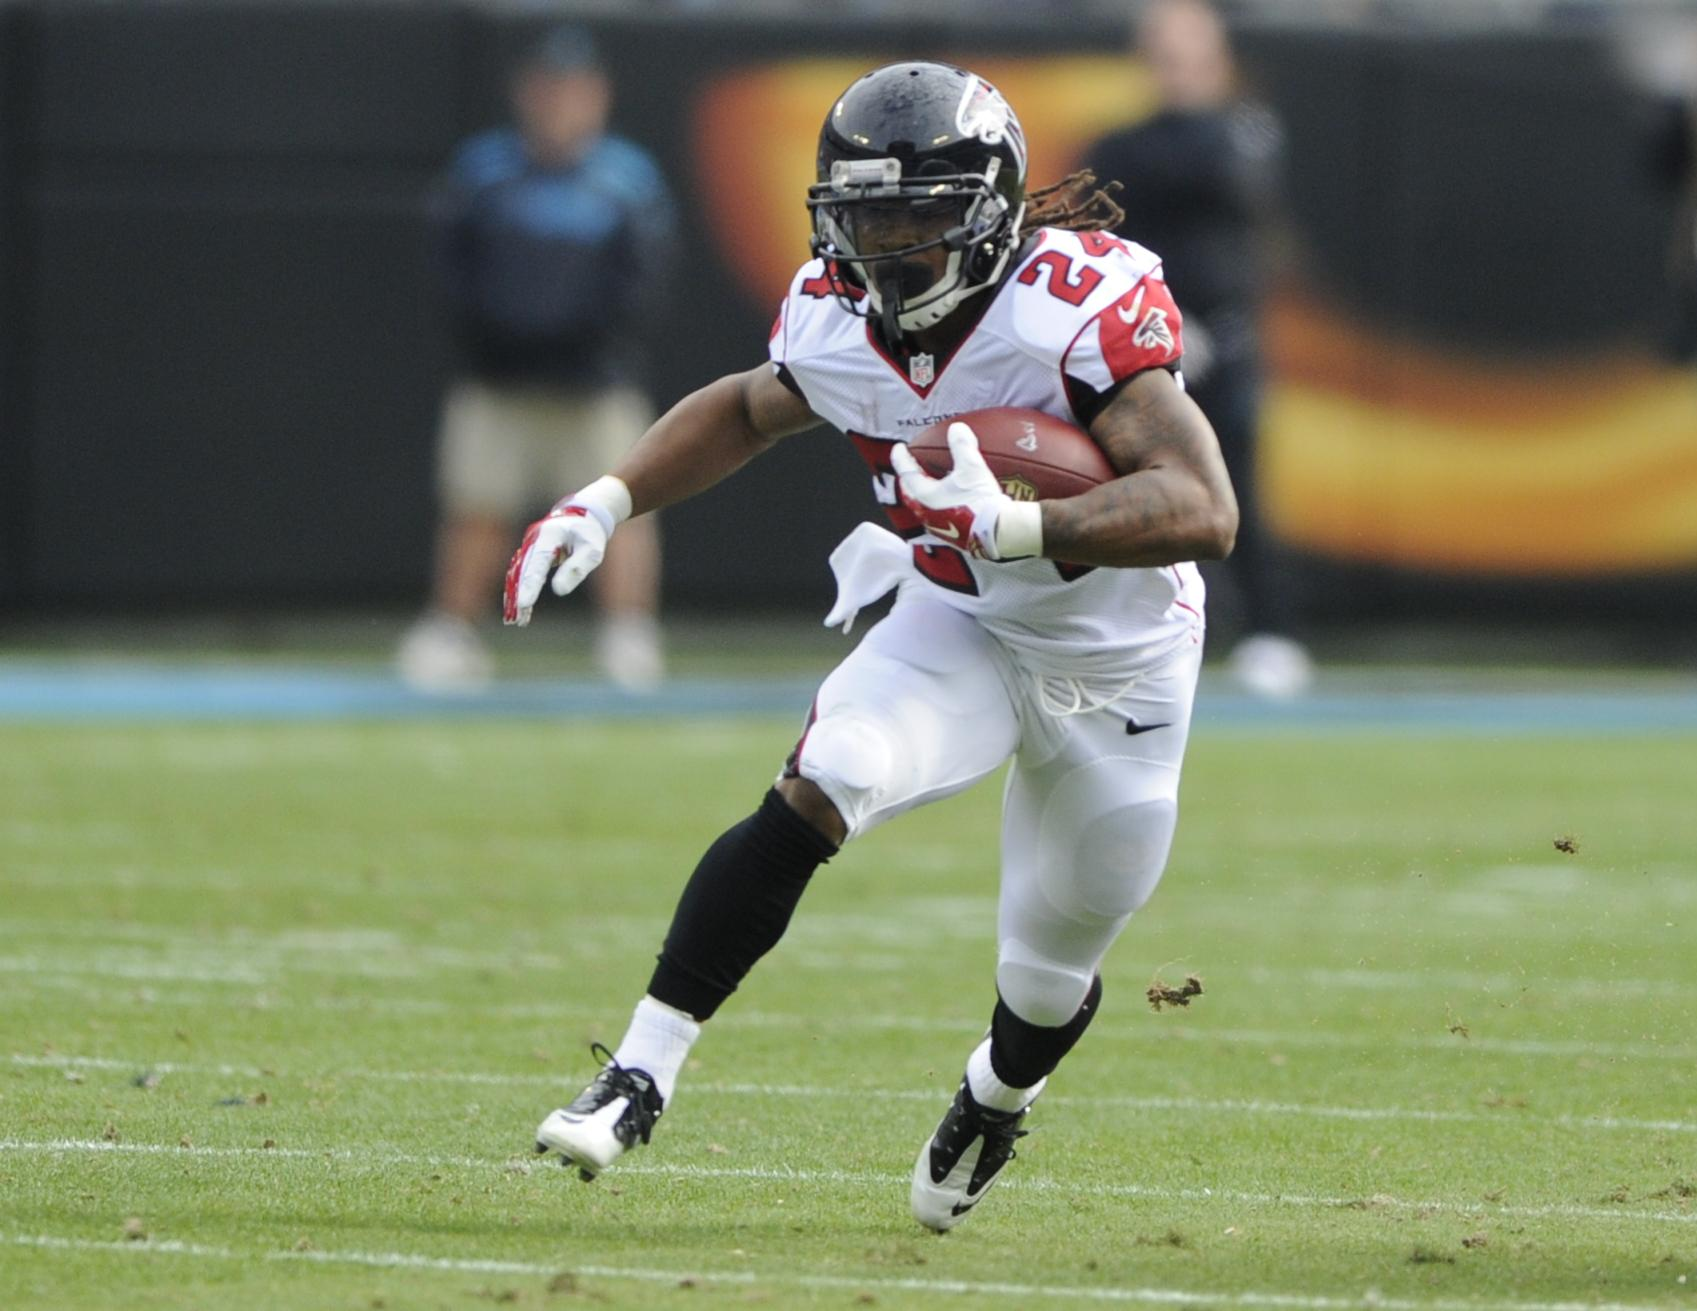 Falcons agree to $41 25 million deal with RB Devonta Freeman